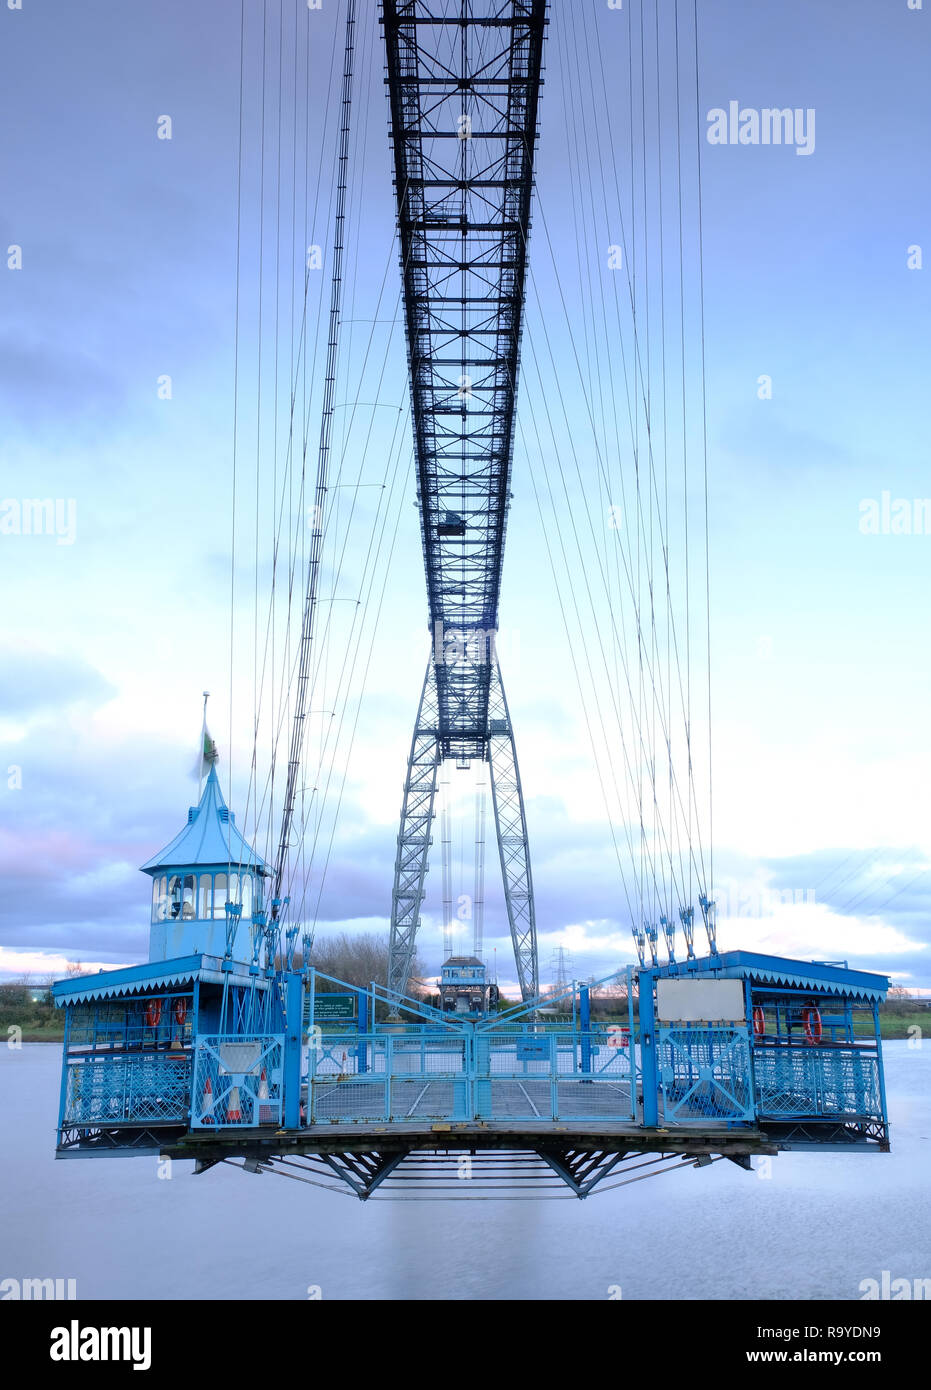 Newport Transporter Bridge over the River Usk, South Wales - Stock Image